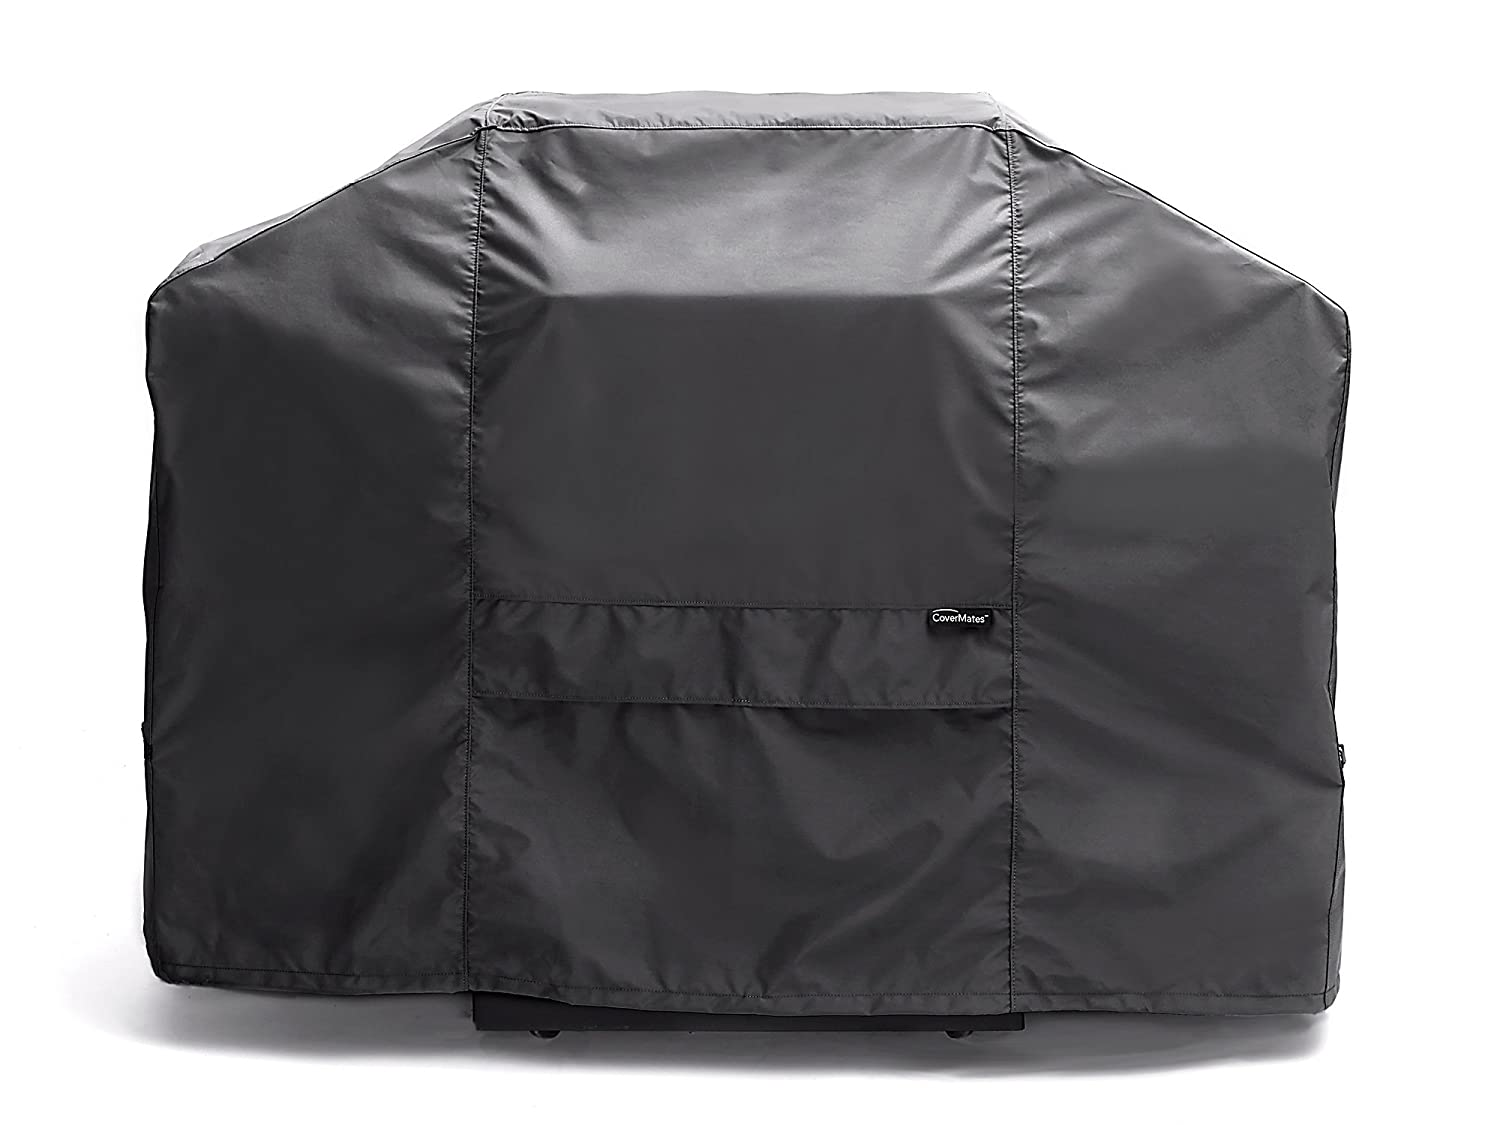 3. CoverMates – Grill Cover – 60W x 25D x 45H – Elite Collection